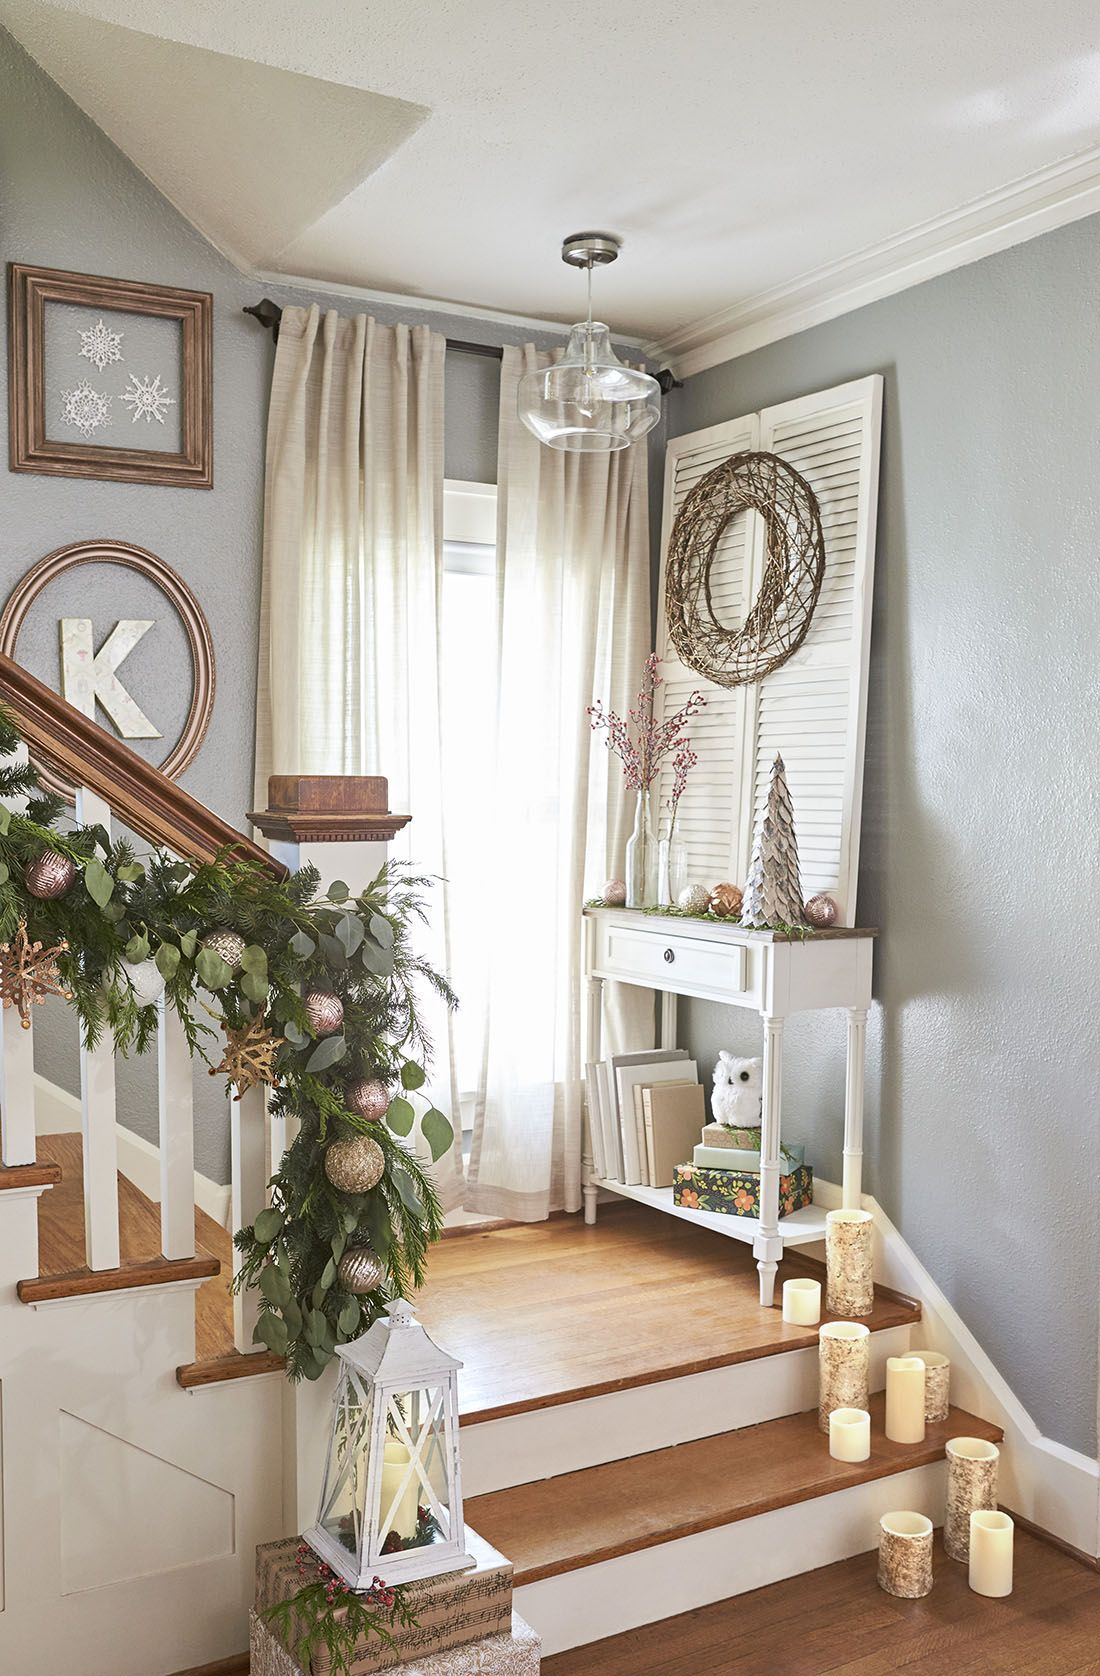 Home Staircase Ideas, Staircase Decorating Ideas   Neat ...